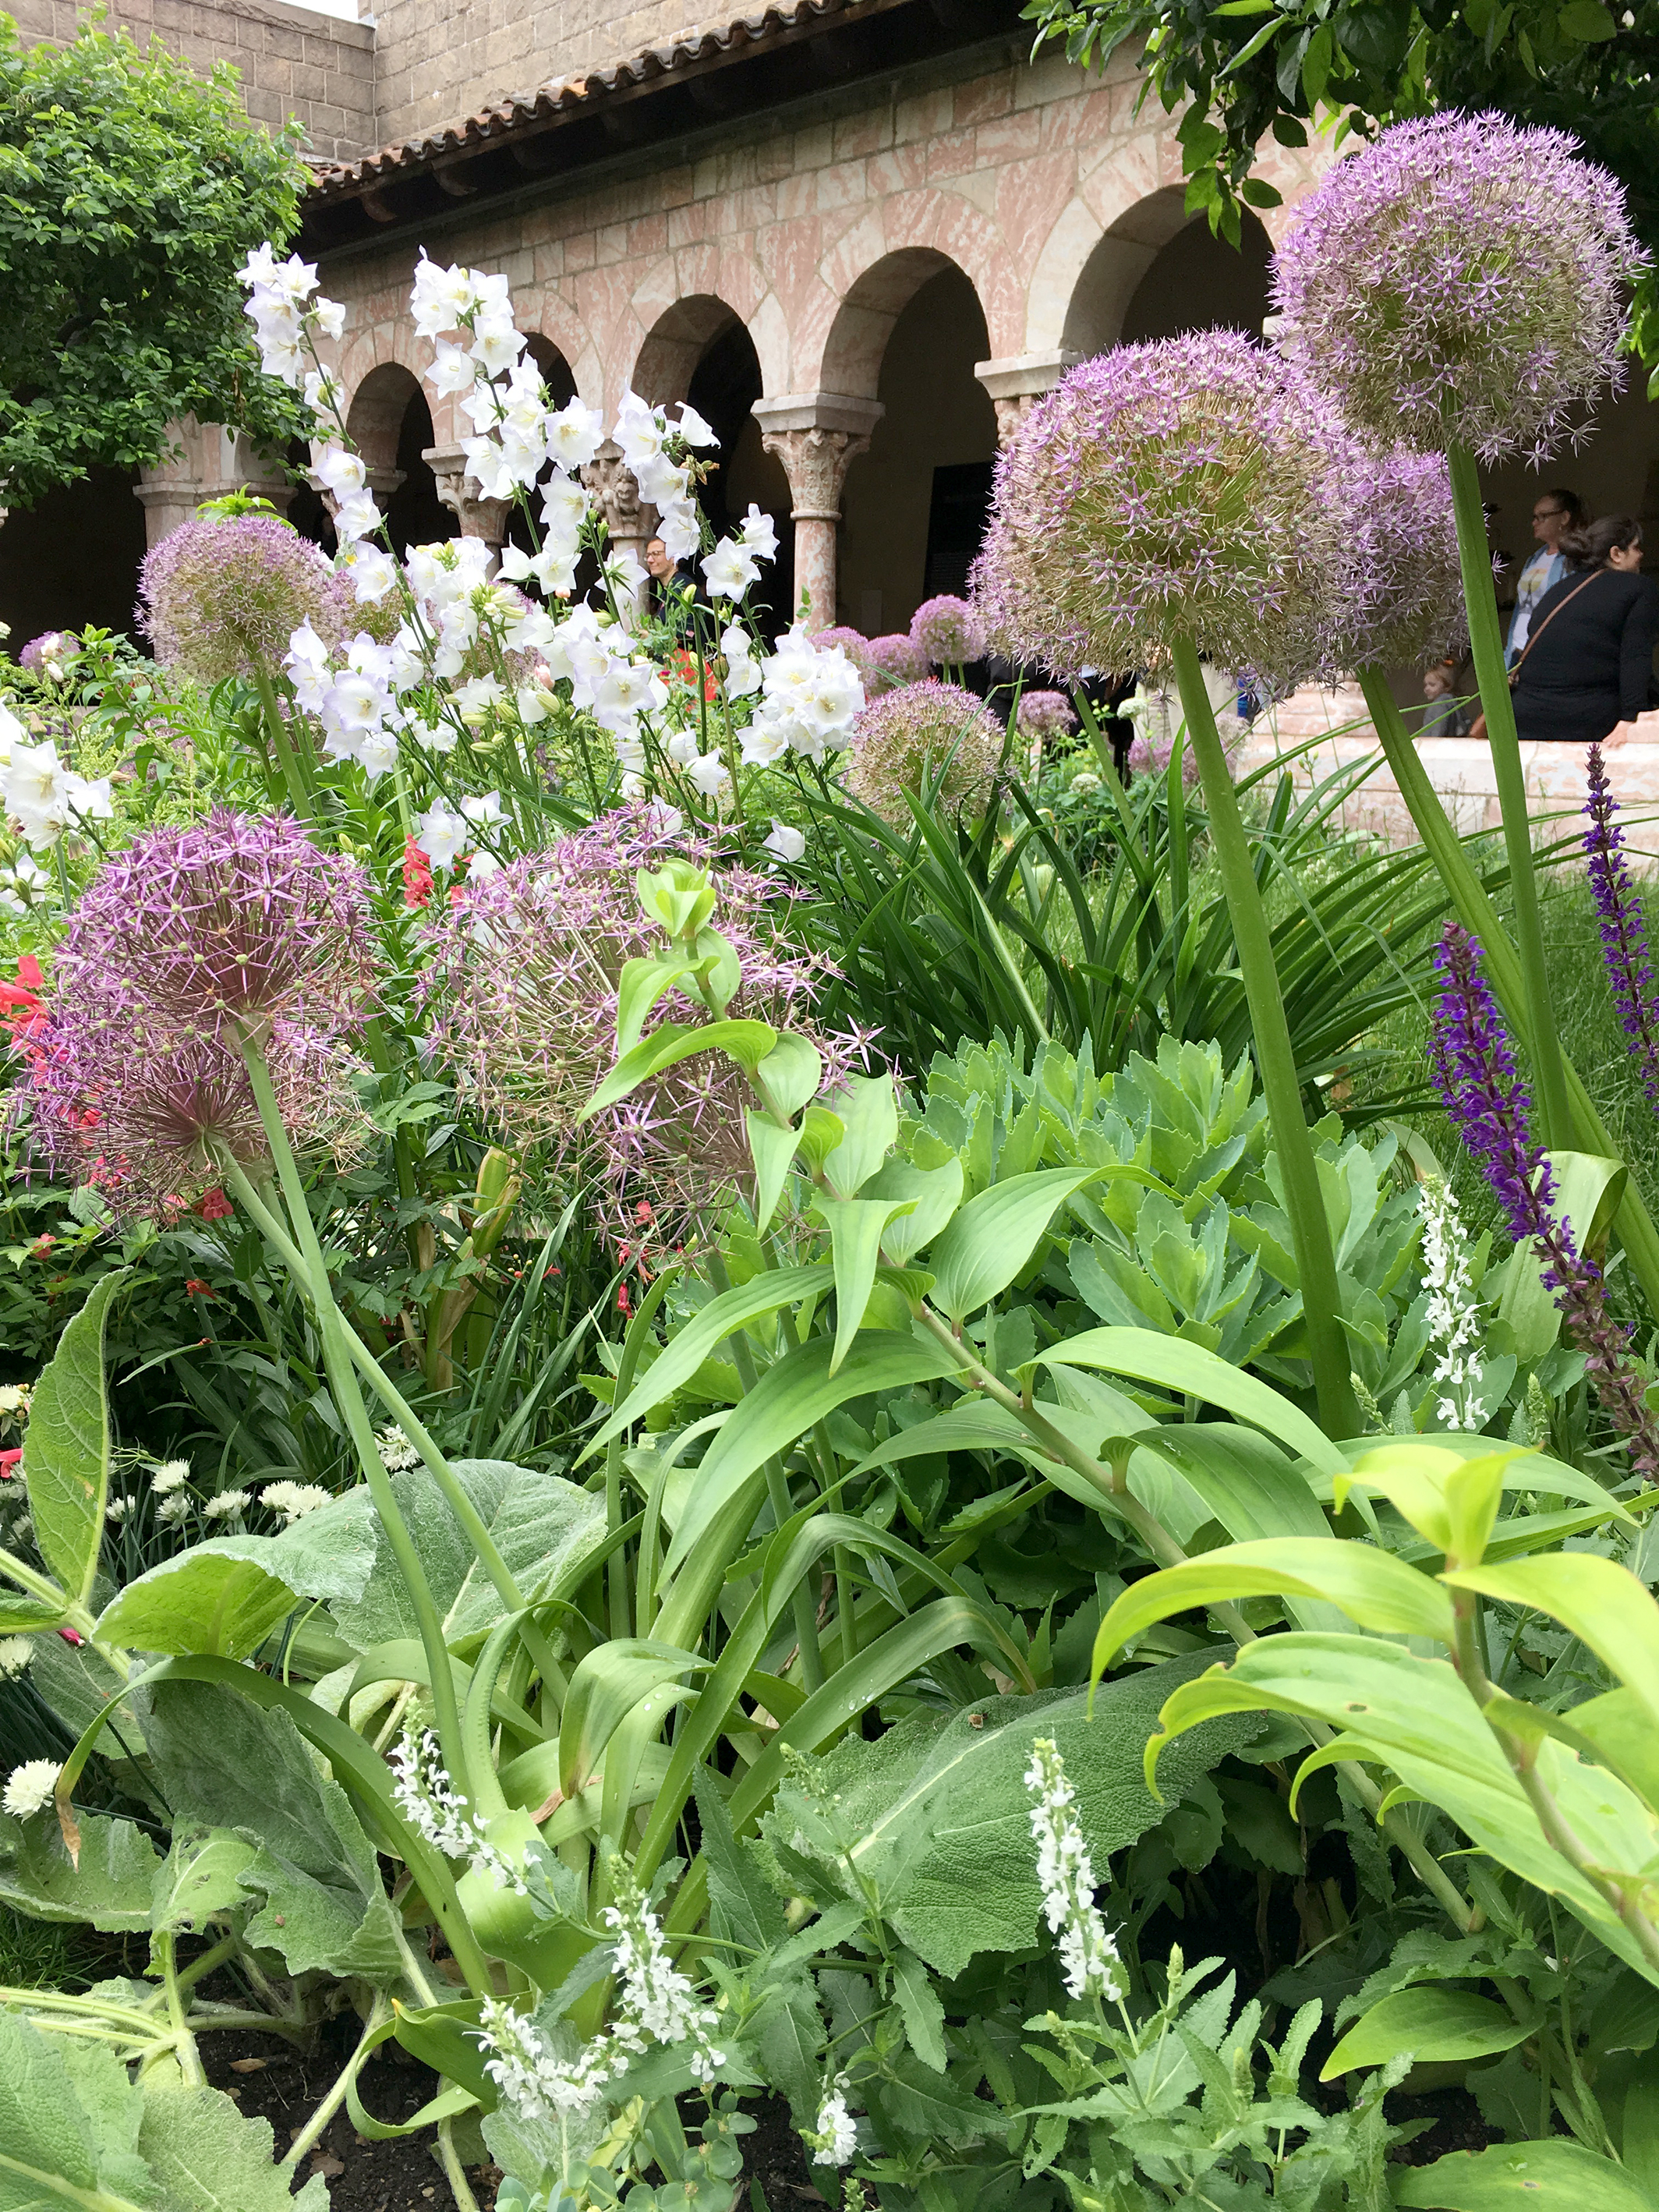 The Judy Black Garden in the Cuxa Cloister